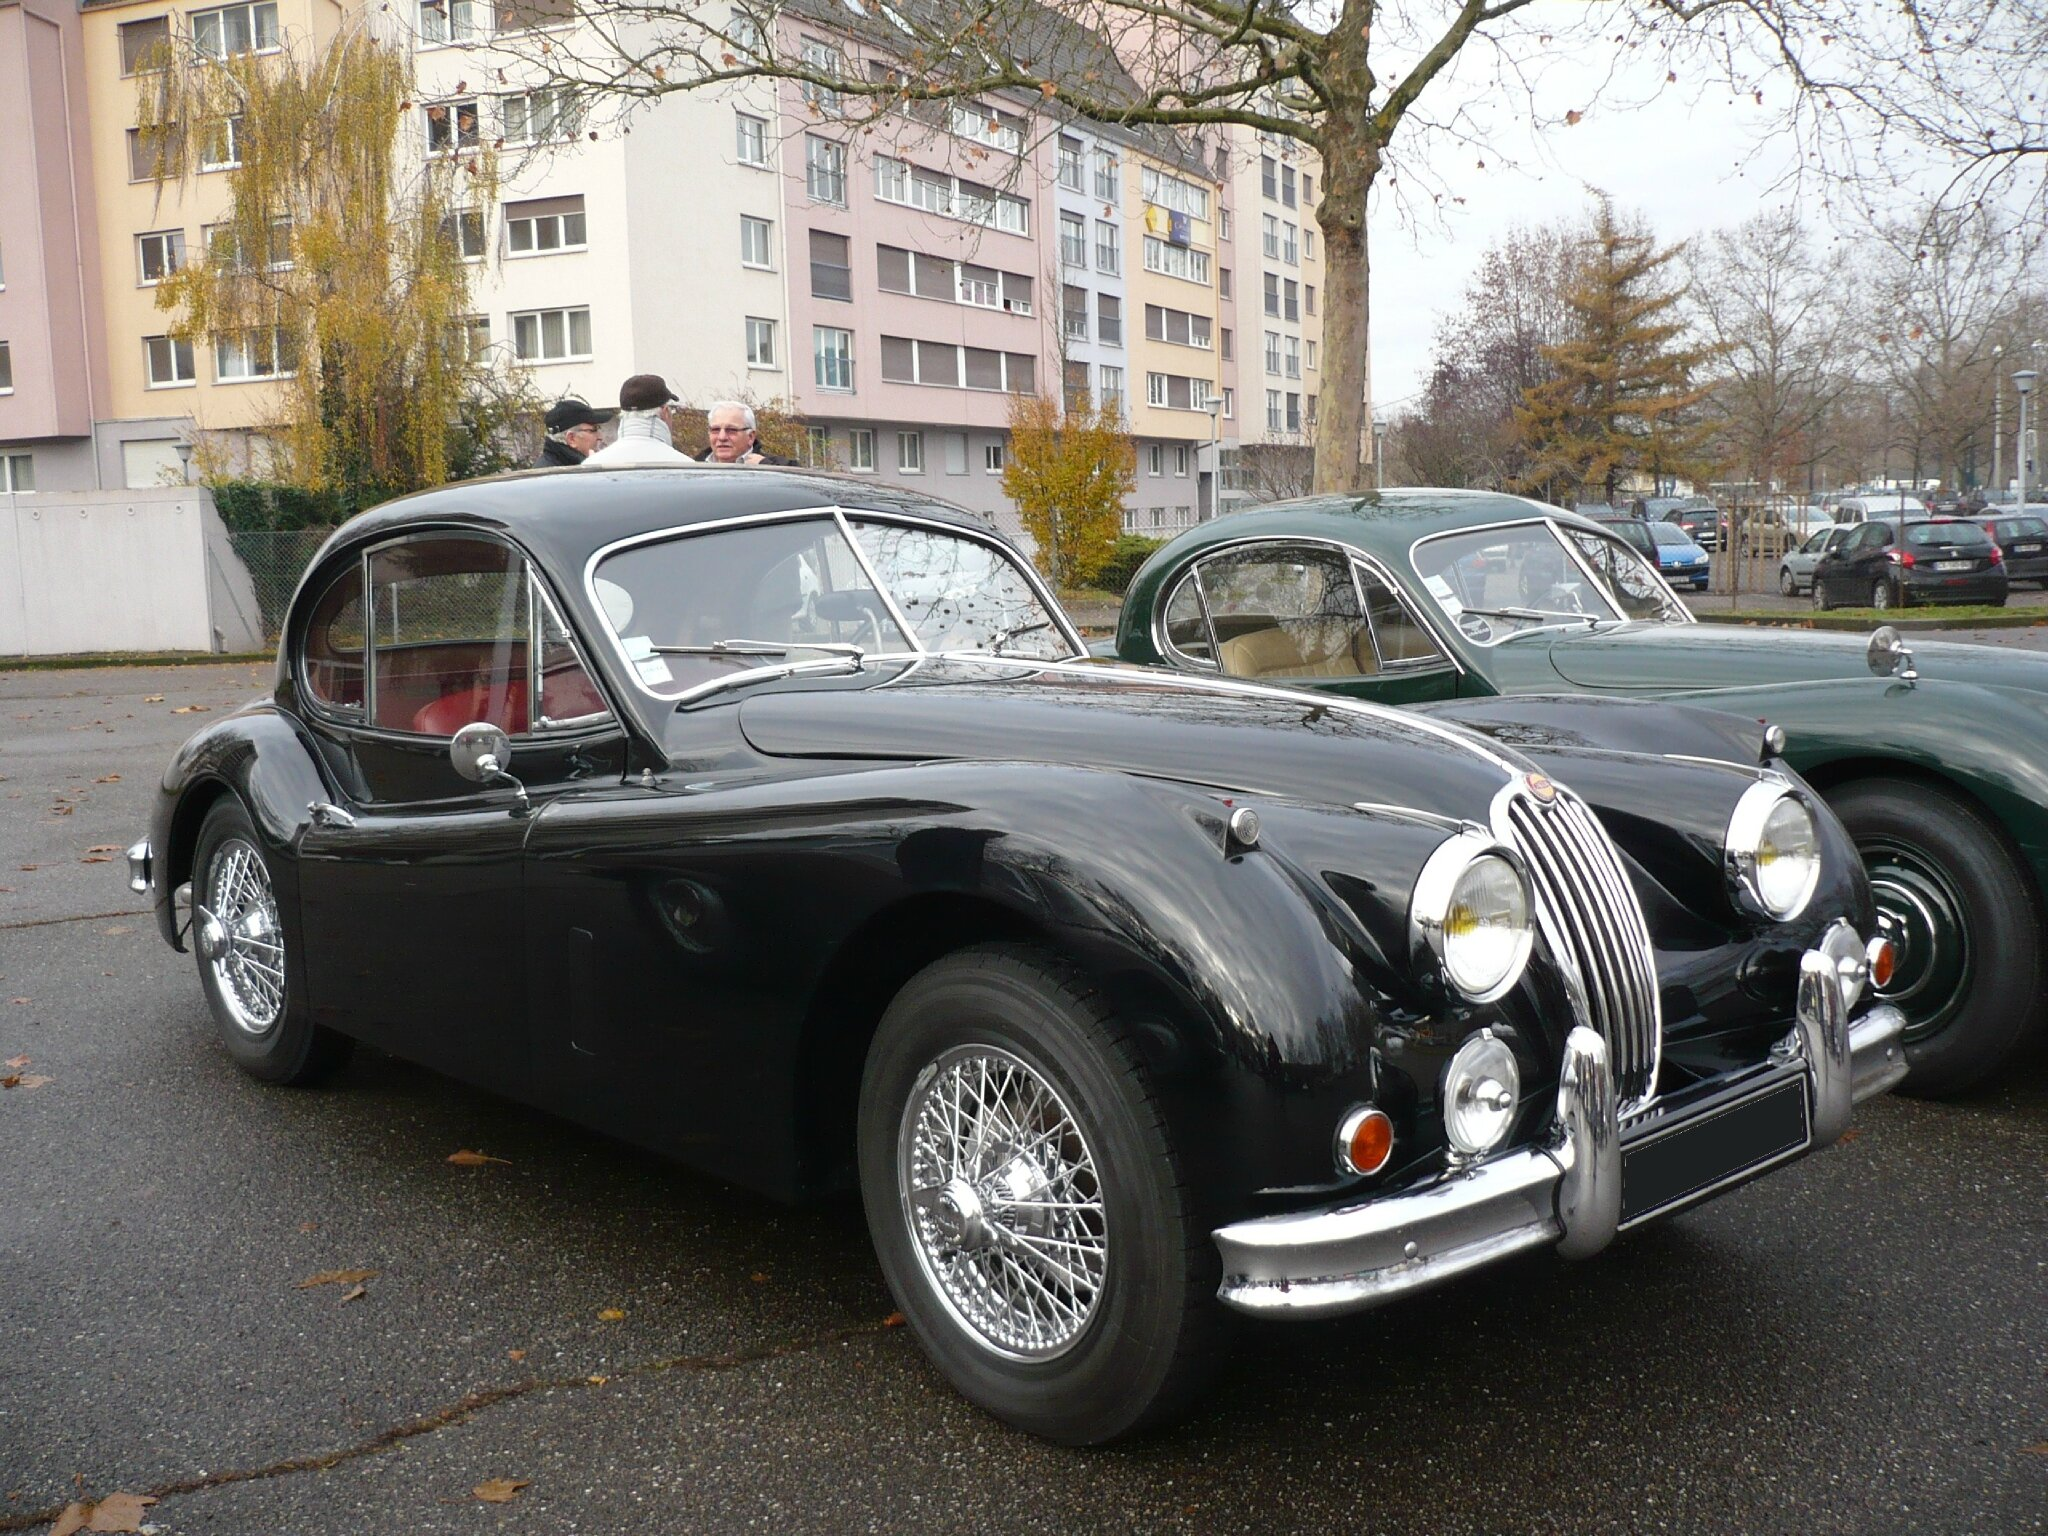 jaguar xk 140 coup strasbourg r trorencard 1 photo de 106 r trorencard de strasbourg. Black Bedroom Furniture Sets. Home Design Ideas